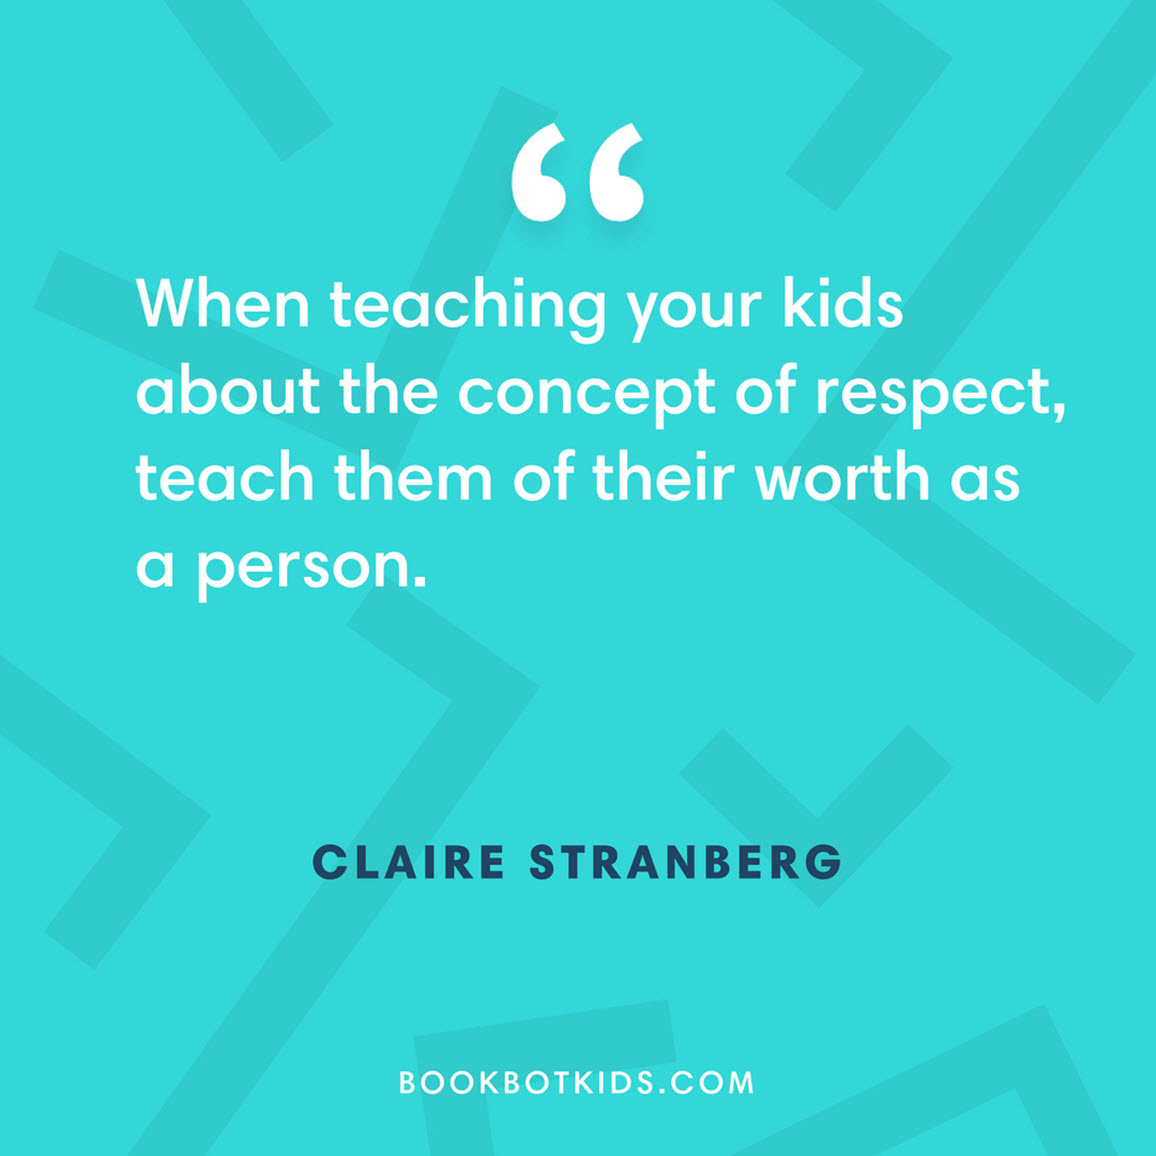 When teaching your kids about the concept of respect, teach them of their worth as a person. – Claire Stranberg